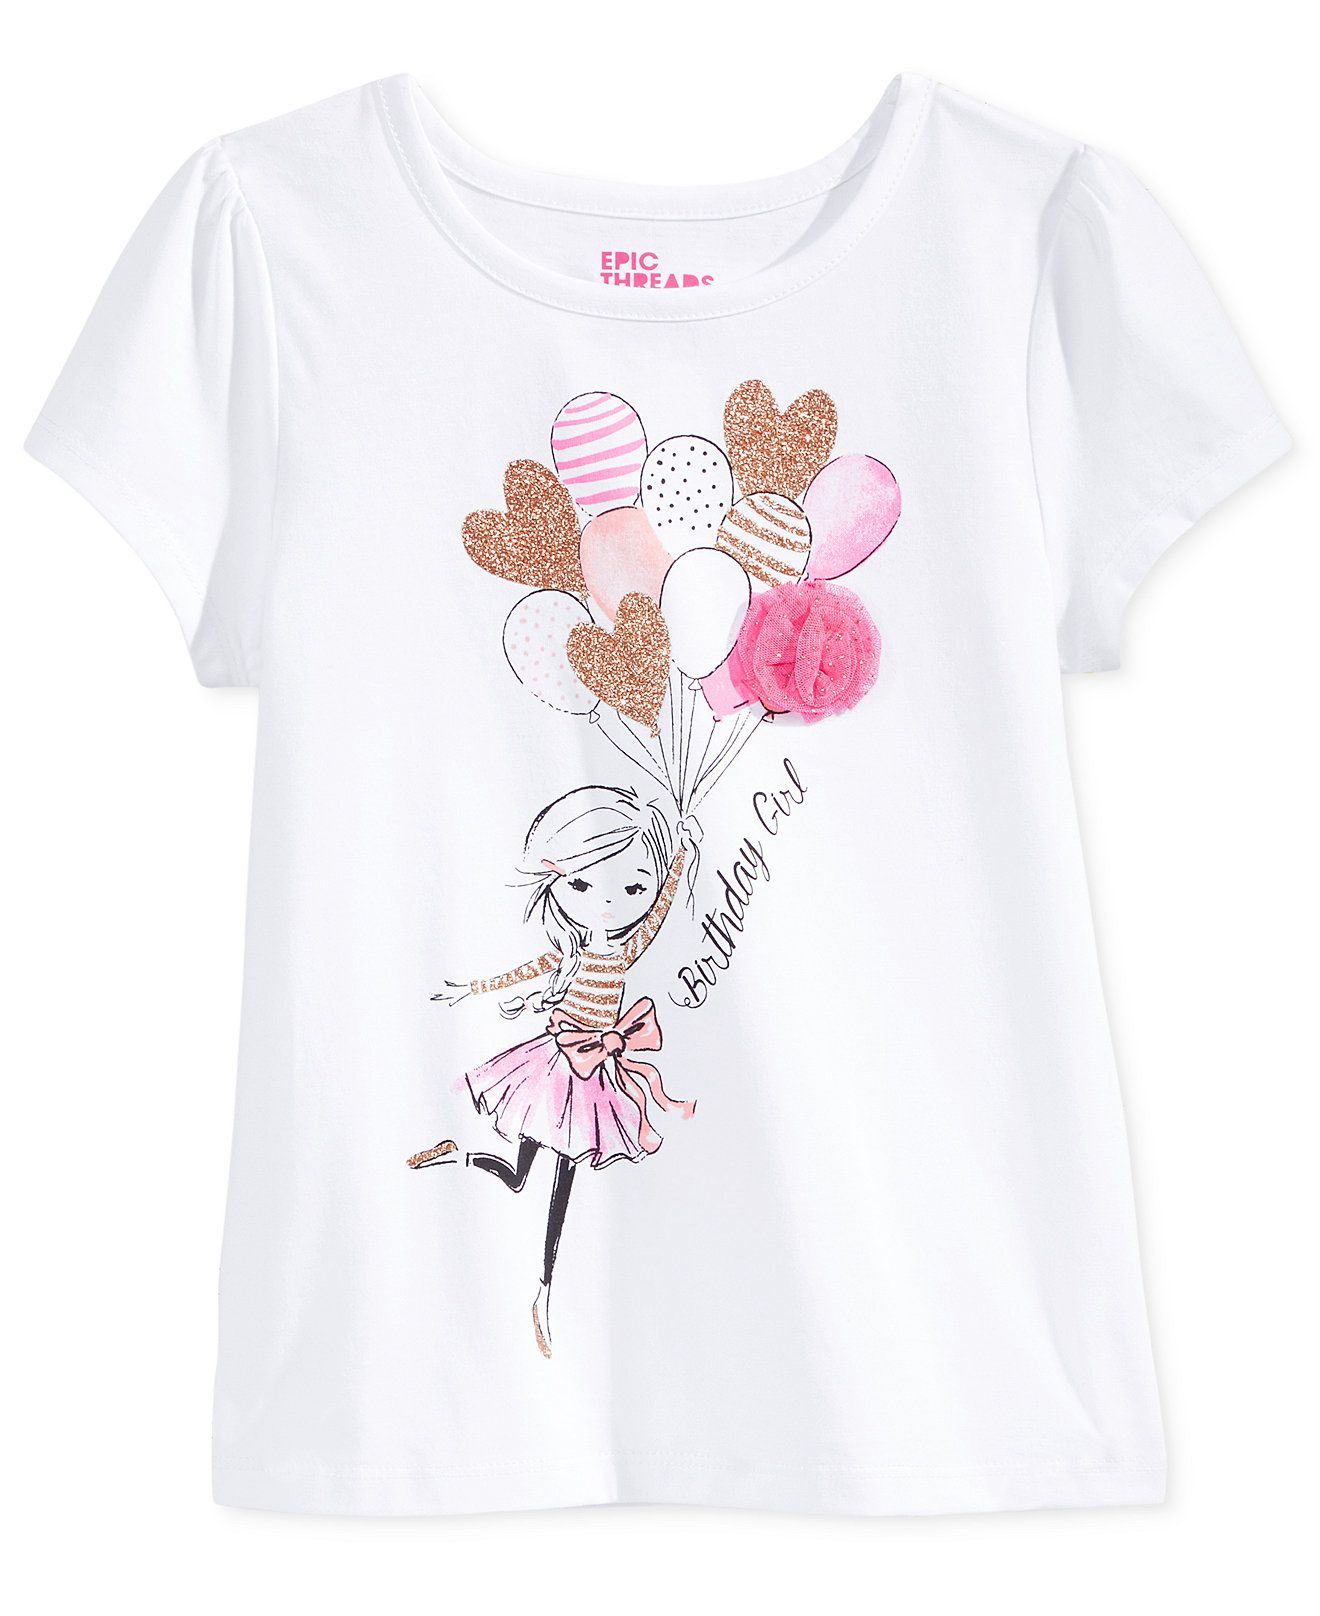 Epic Threads Mix And Match Birthday Girl Graphic-Print T